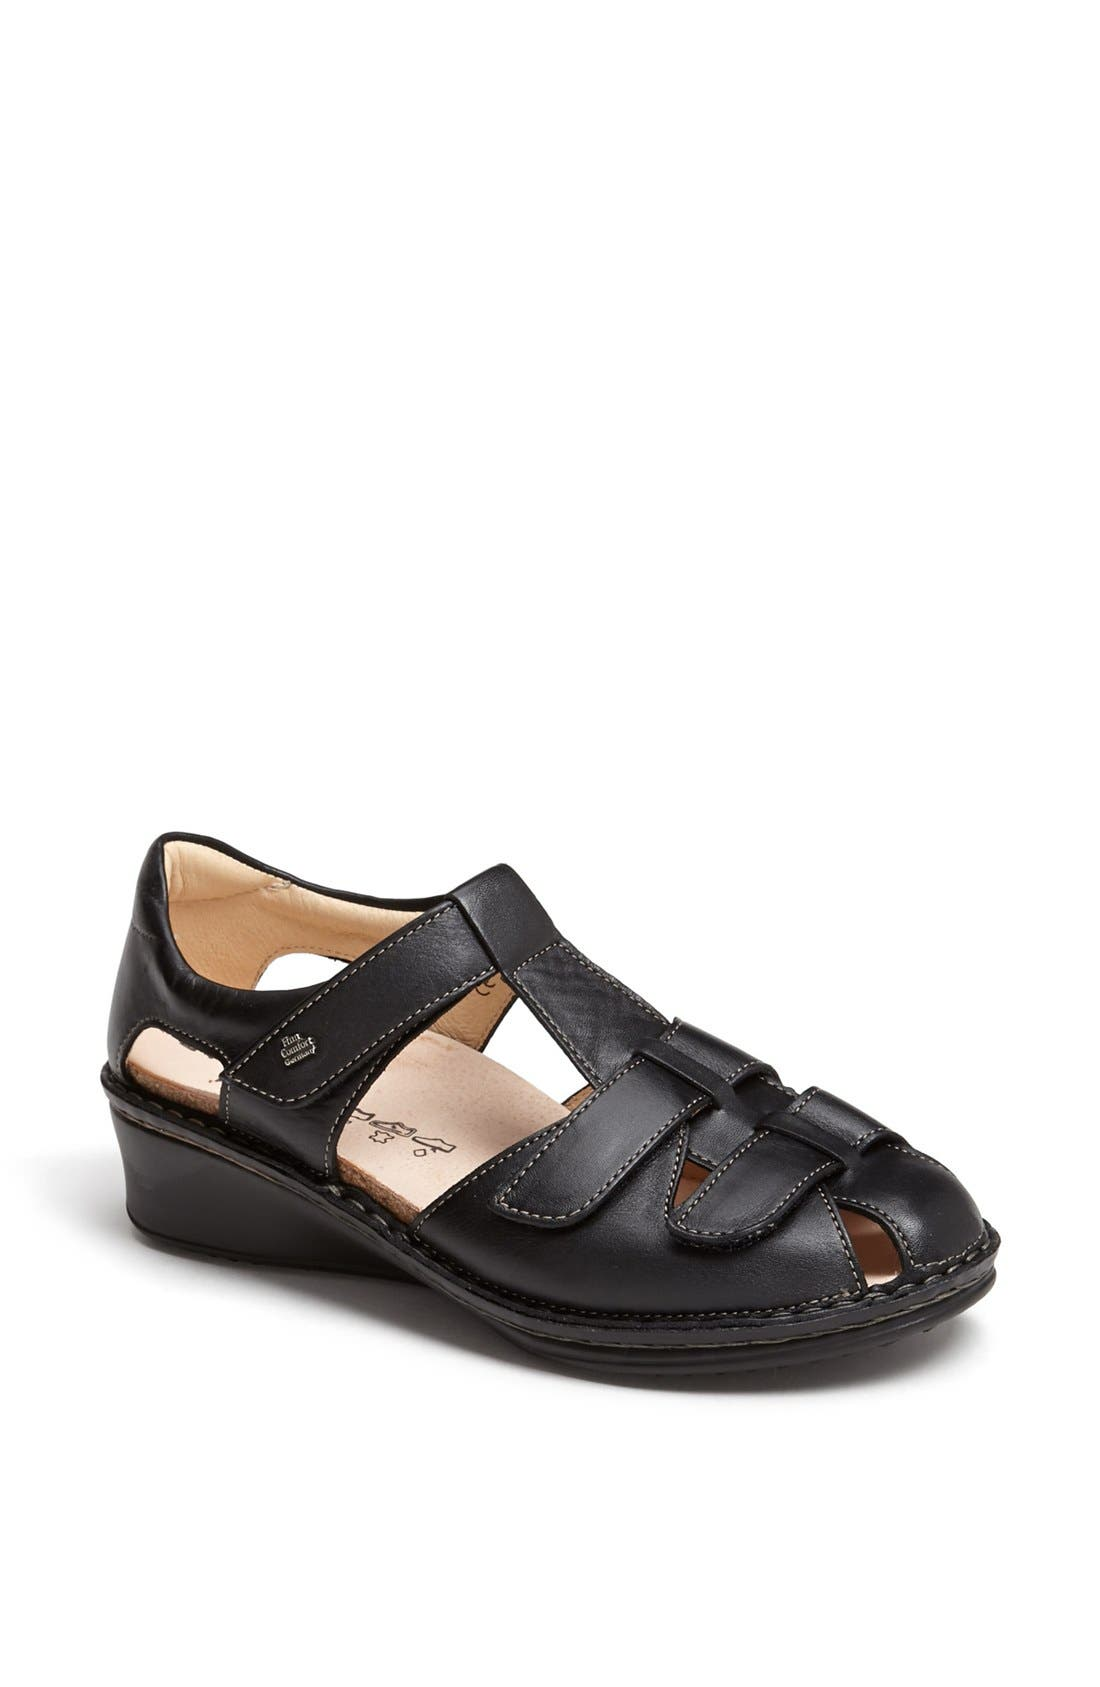 'Funnen' Sandal,                         Main,                         color, Black